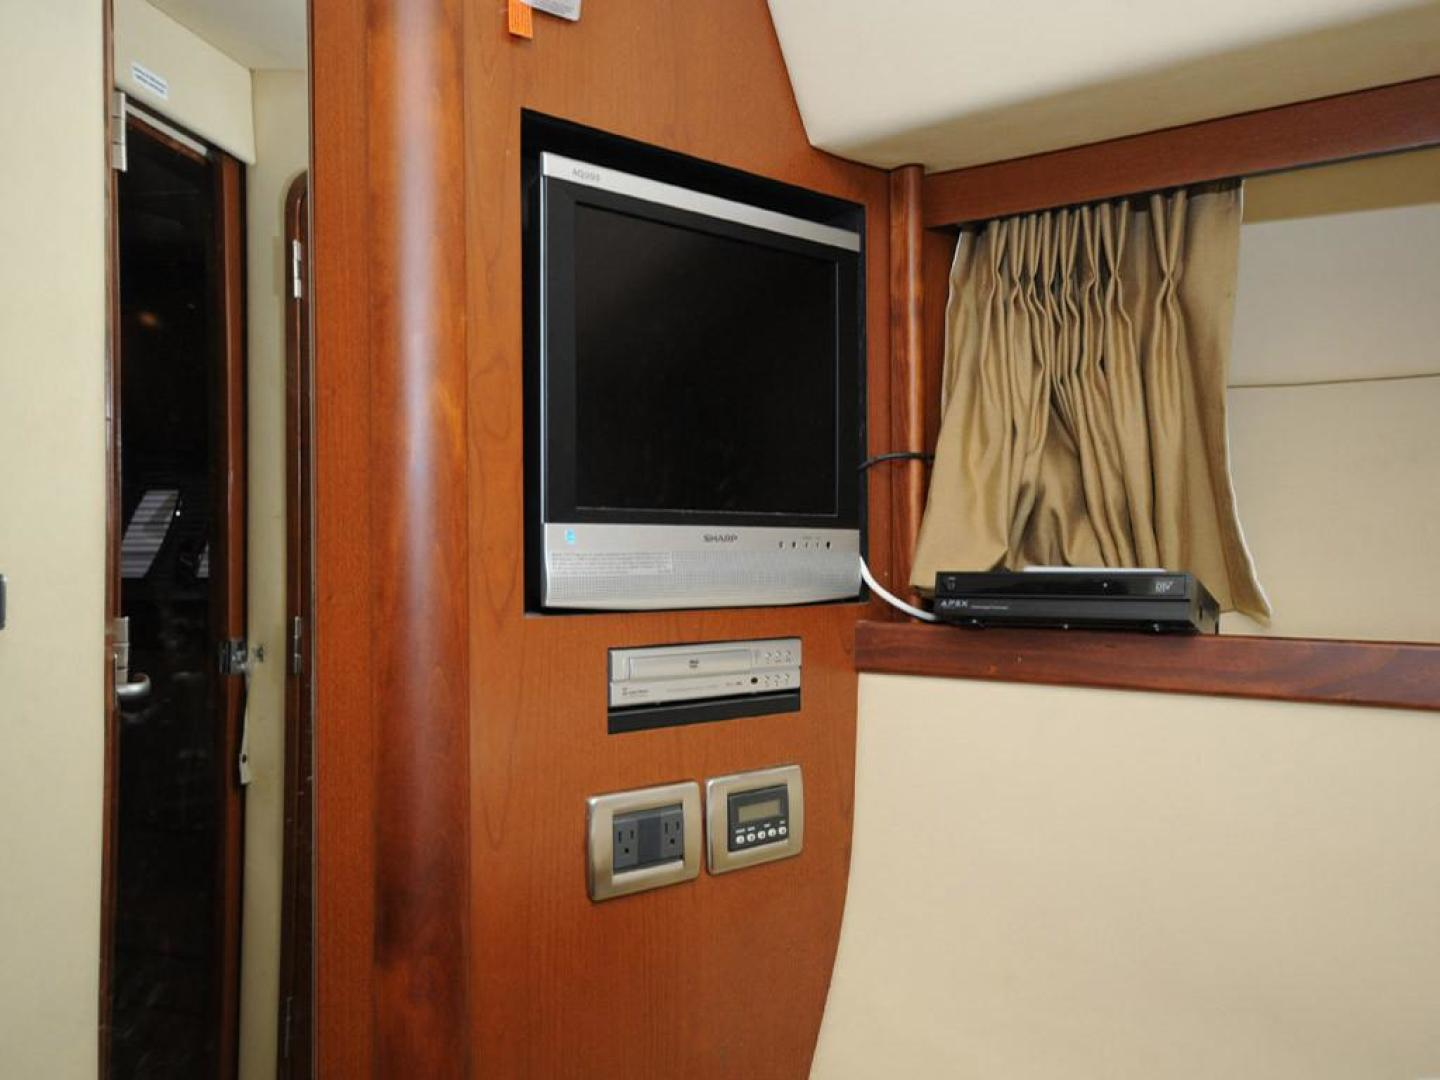 Sea-Ray-38-Sundancer-2007-El-Don-North-Beach-Maryland-United-States-Master-Stateroom-Port-Side-TV-923264